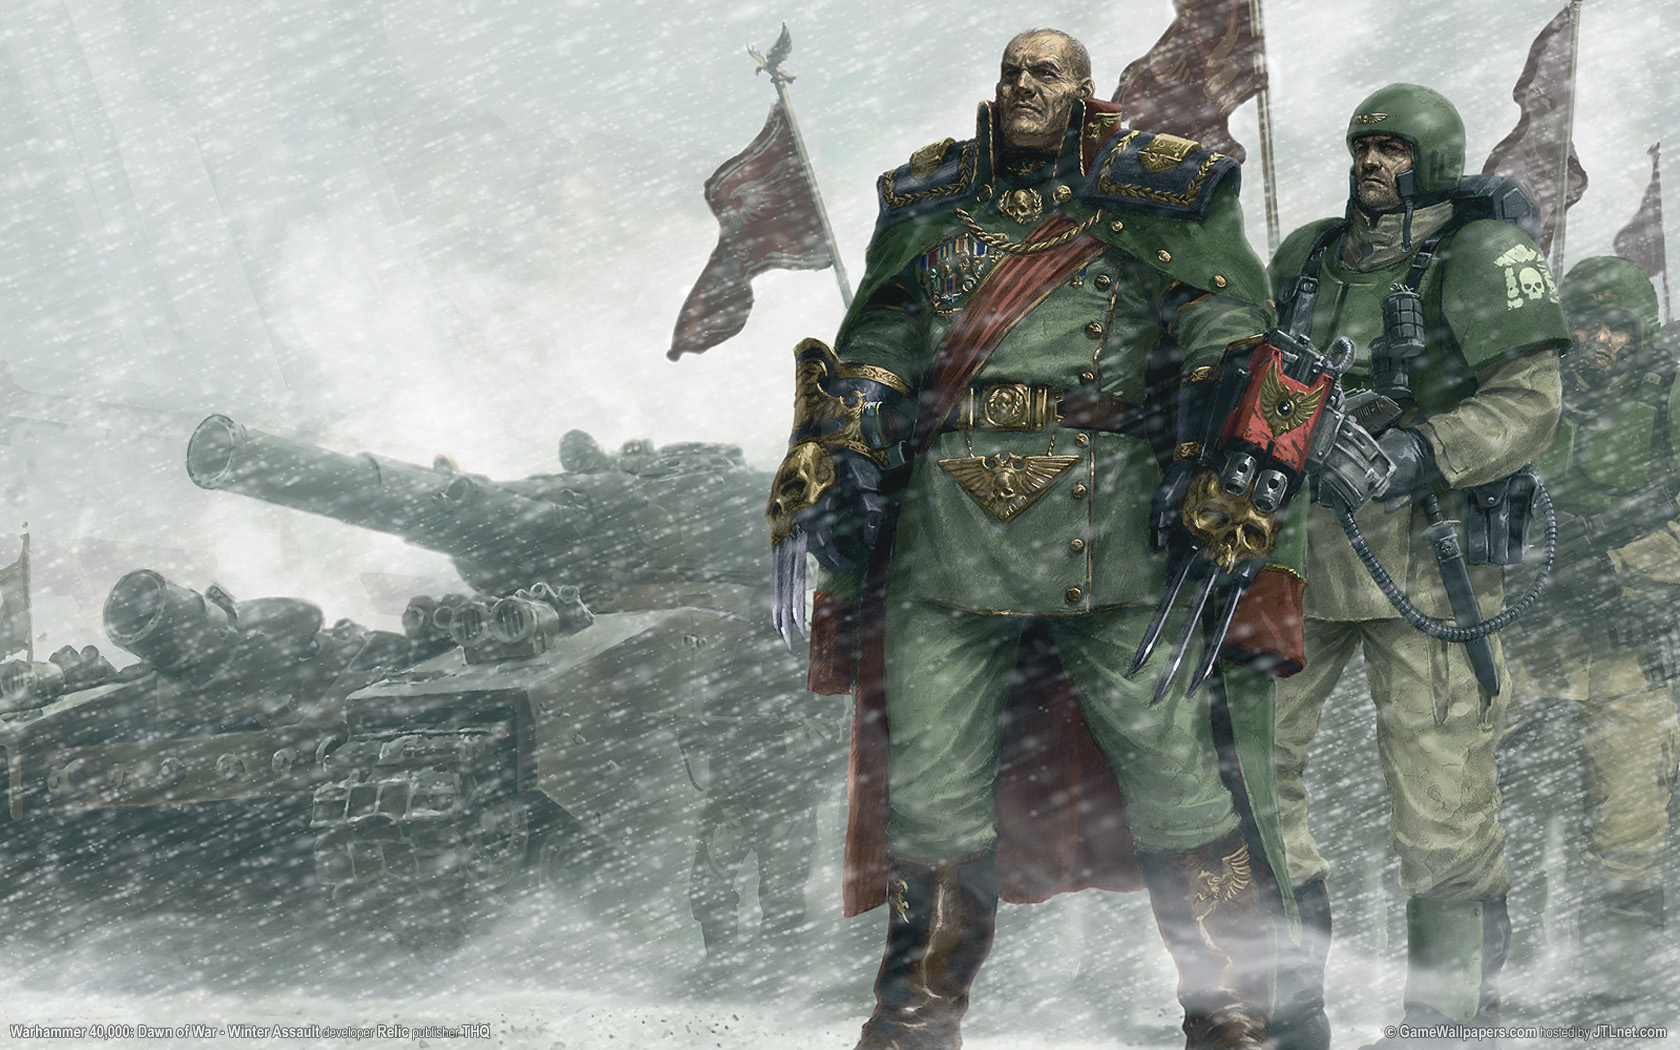 wallpaper_warhammer_40,000_dawn_of_war_-_winter_assault_03_1680x1050.jpg